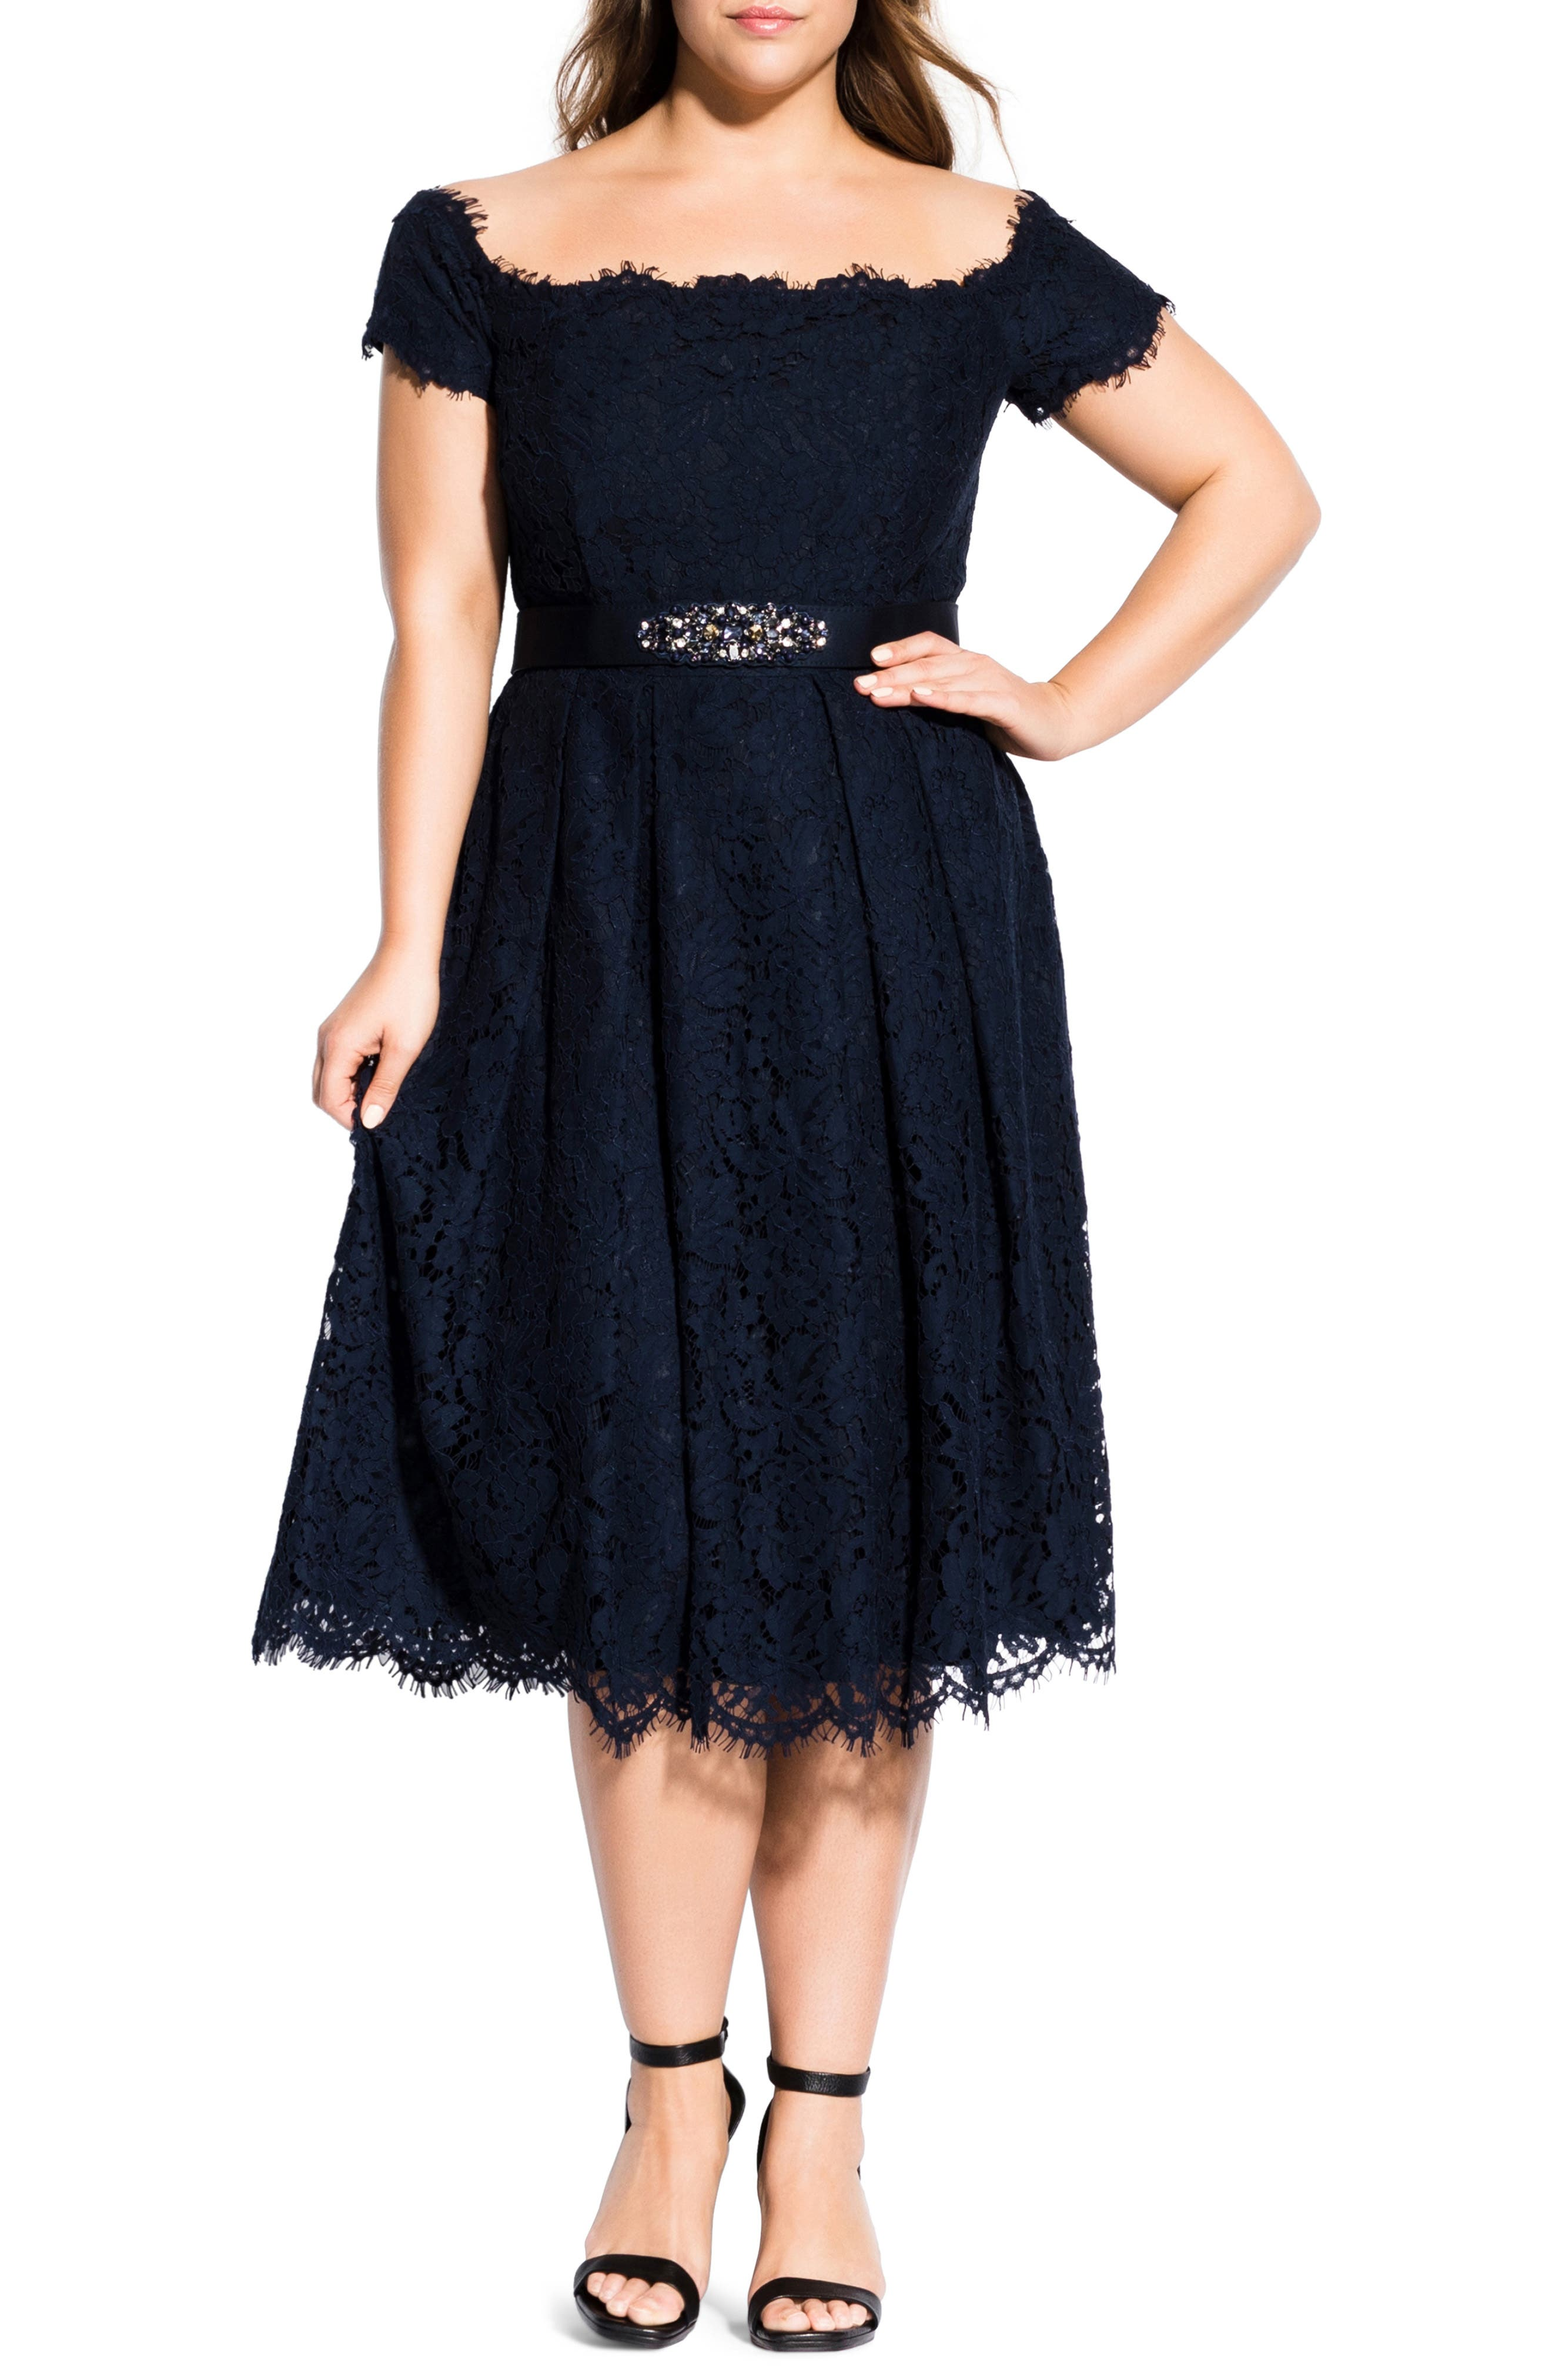 1950s Cocktail Dresses, Party Dresses Plus Size Womens City Chic Off The Shoulder Lace Dreams Midi Dress Size Small - Blue $169.00 AT vintagedancer.com